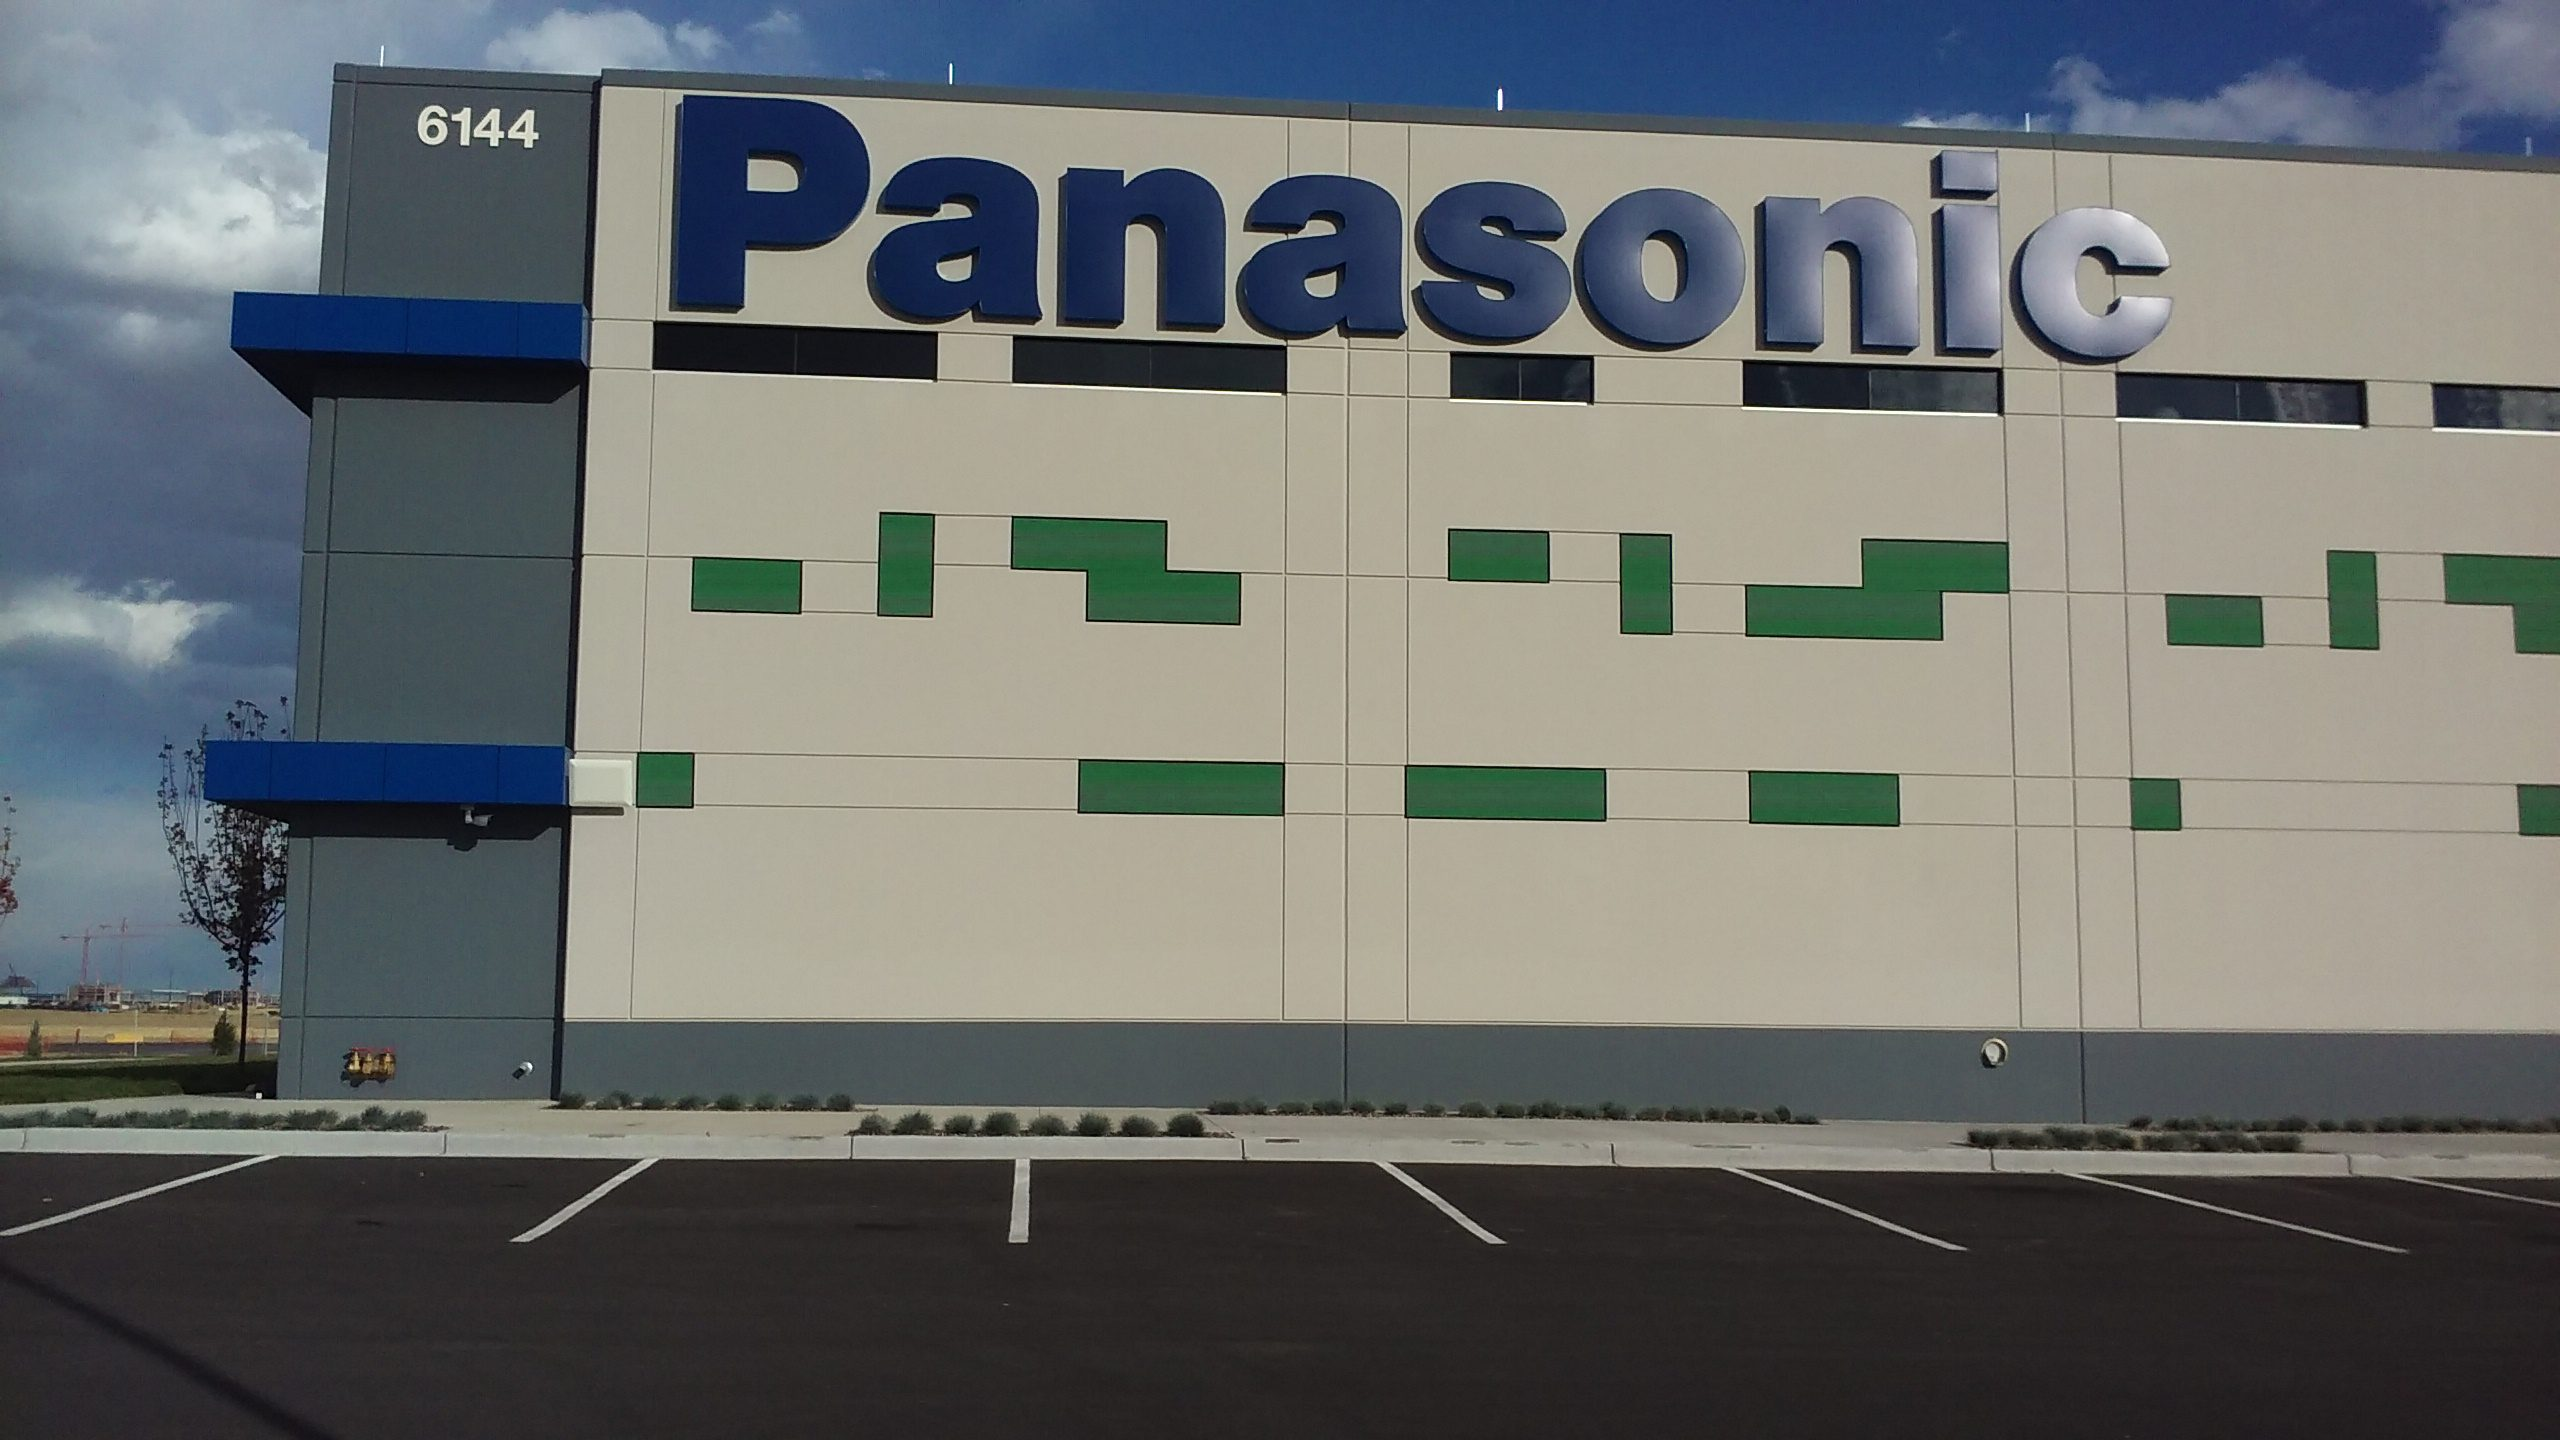 Panasonic custom sign by The Colorado Sign Company